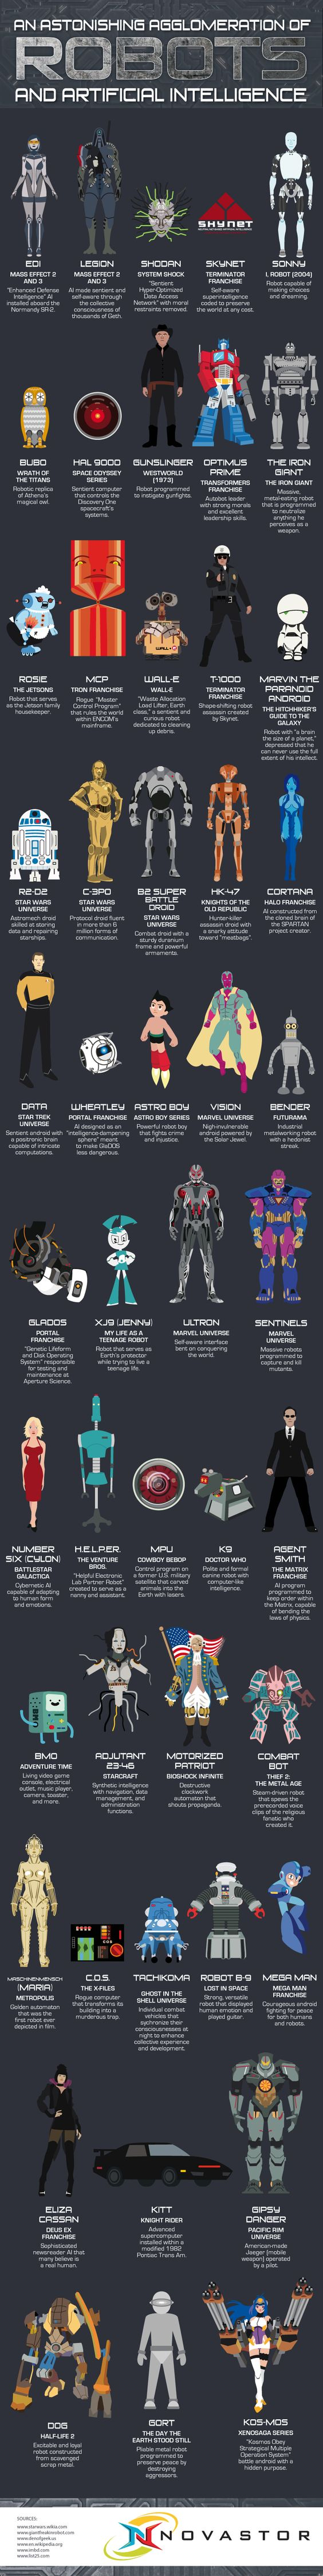 An Astonishing Agglomeration of Robots and Artificial Intelligence #infographic #Technology #Entertainment